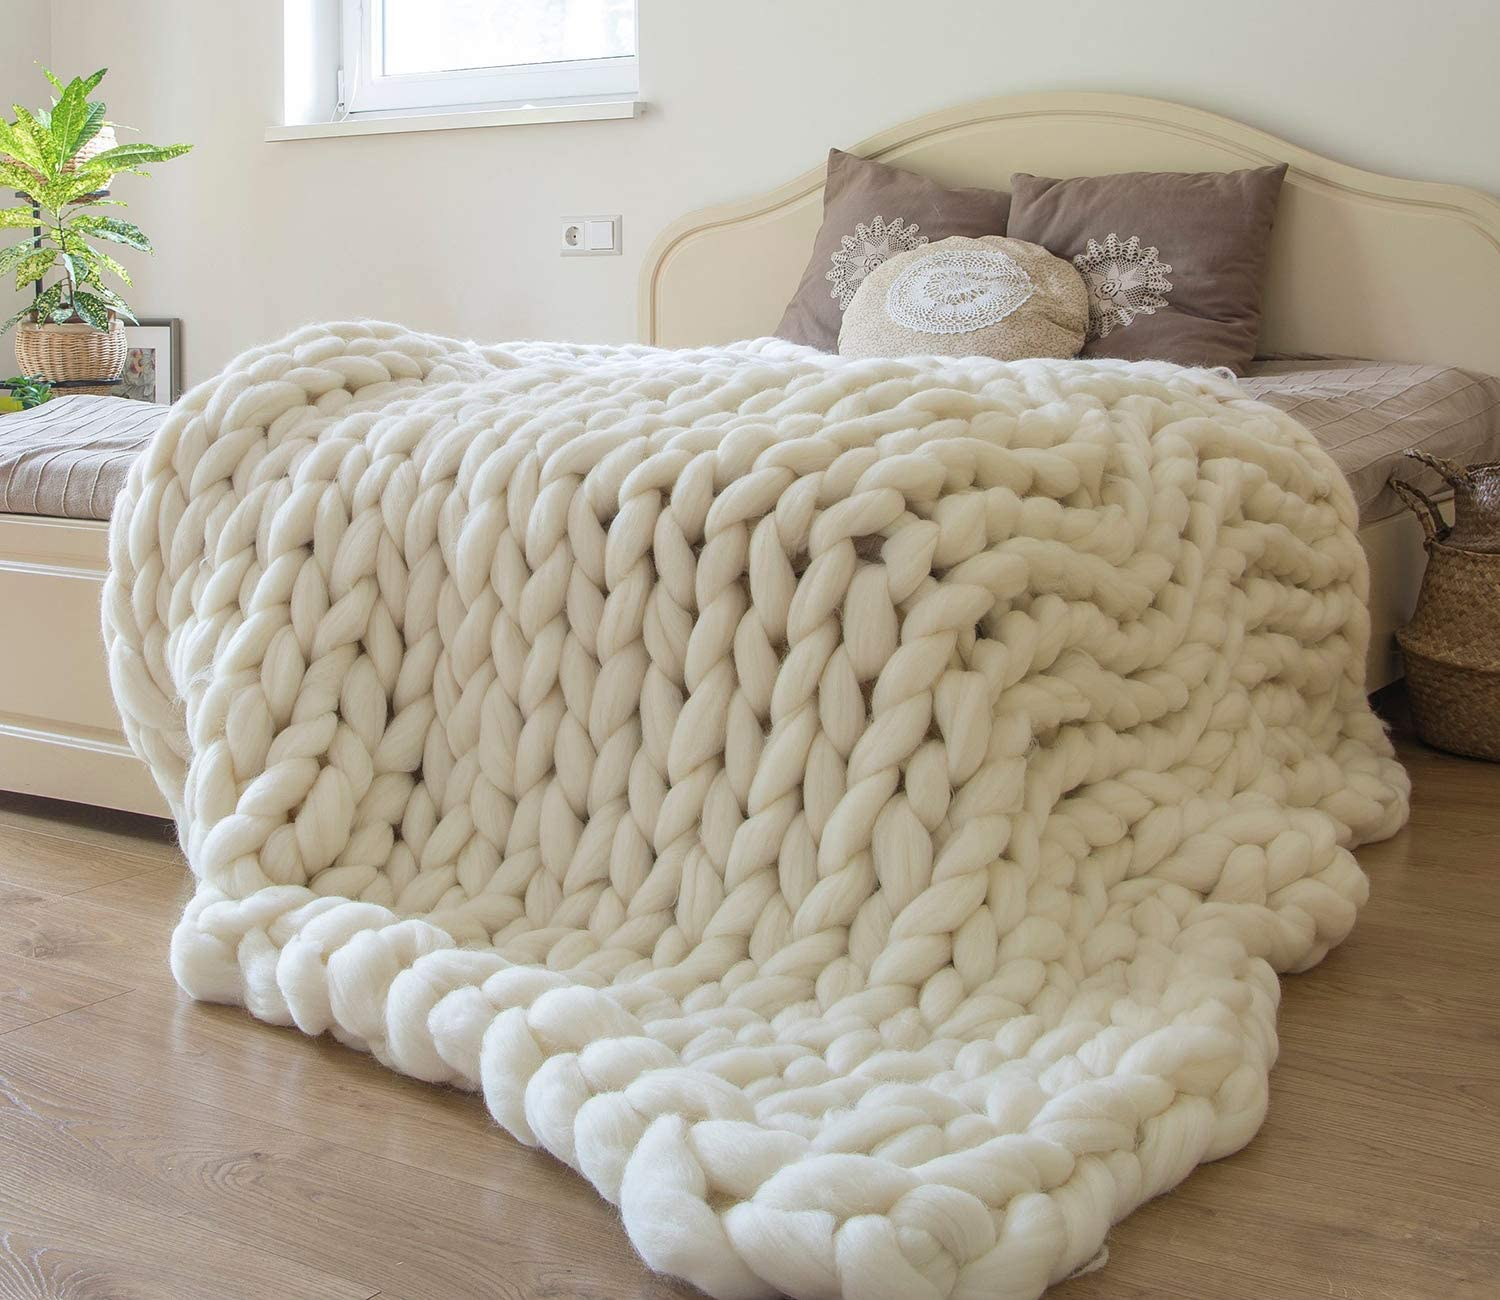 gifts-for-7th-anniversary-blanket